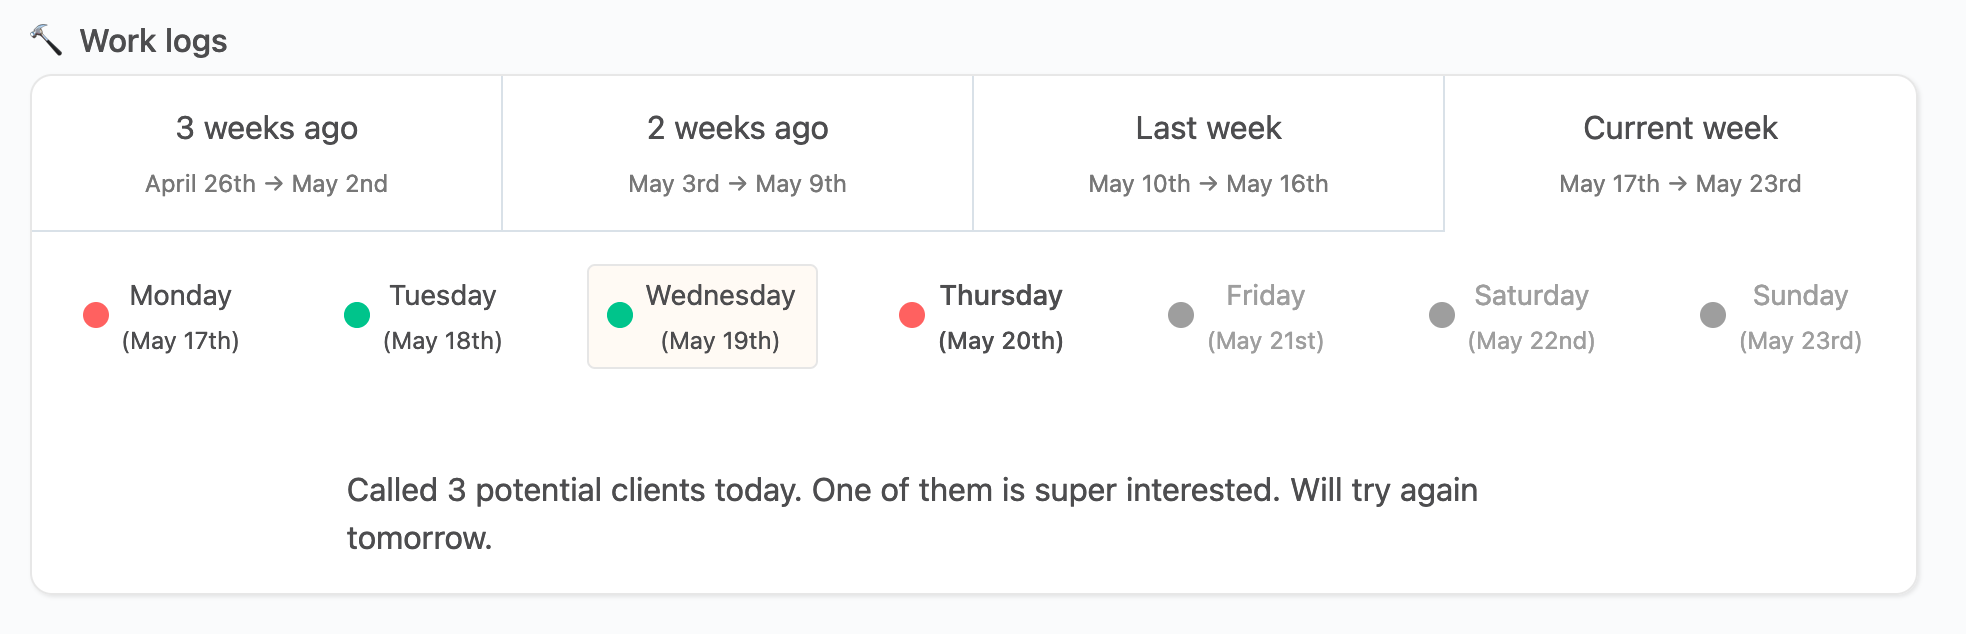 image of work log on employee page